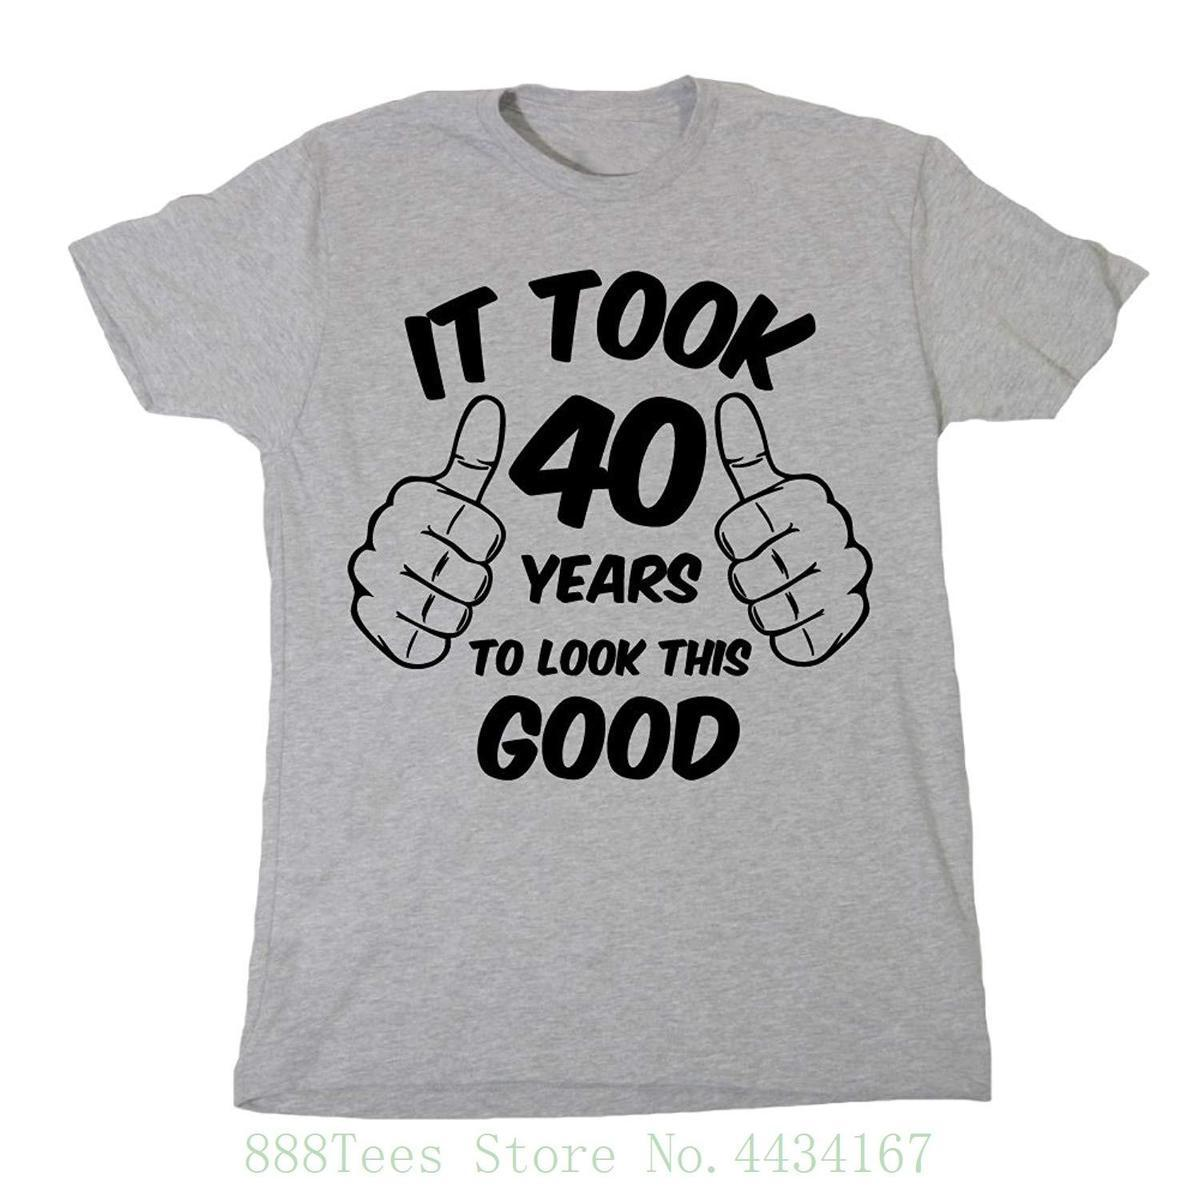 Postees It Took 40 Years To Look This Good 40th Birthday T Shirt Mens Hipster Short Sleeve Tee Tops Latest Shirts Design Best From Yubin10